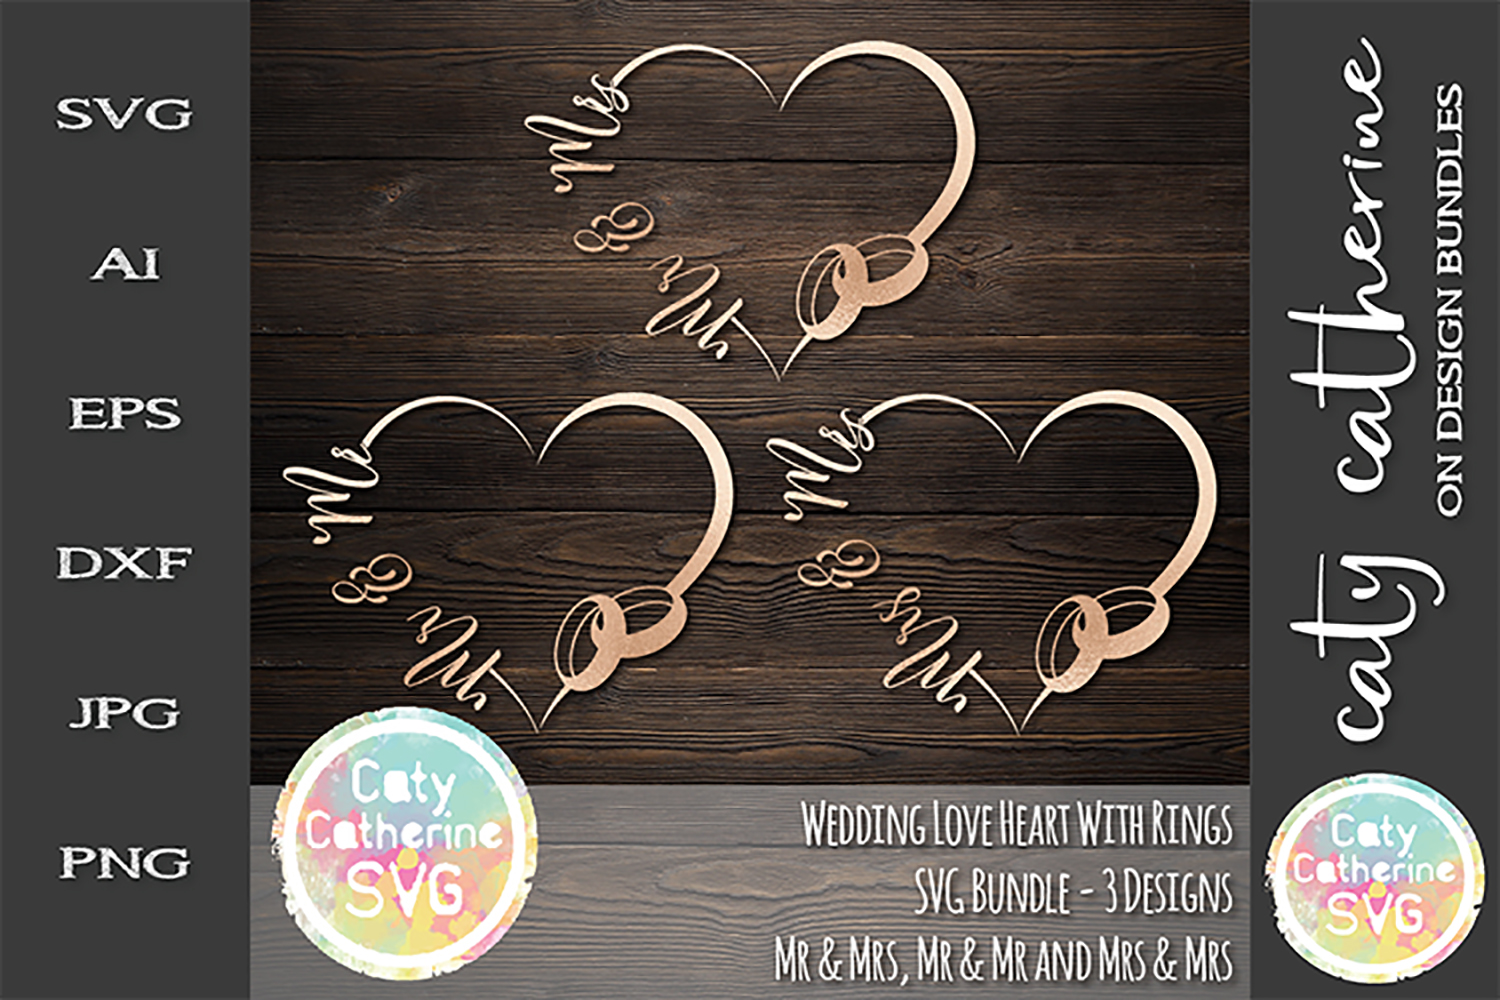 Wedding Love Heart Frame With Rings Bundle SVG Cut File example image 1